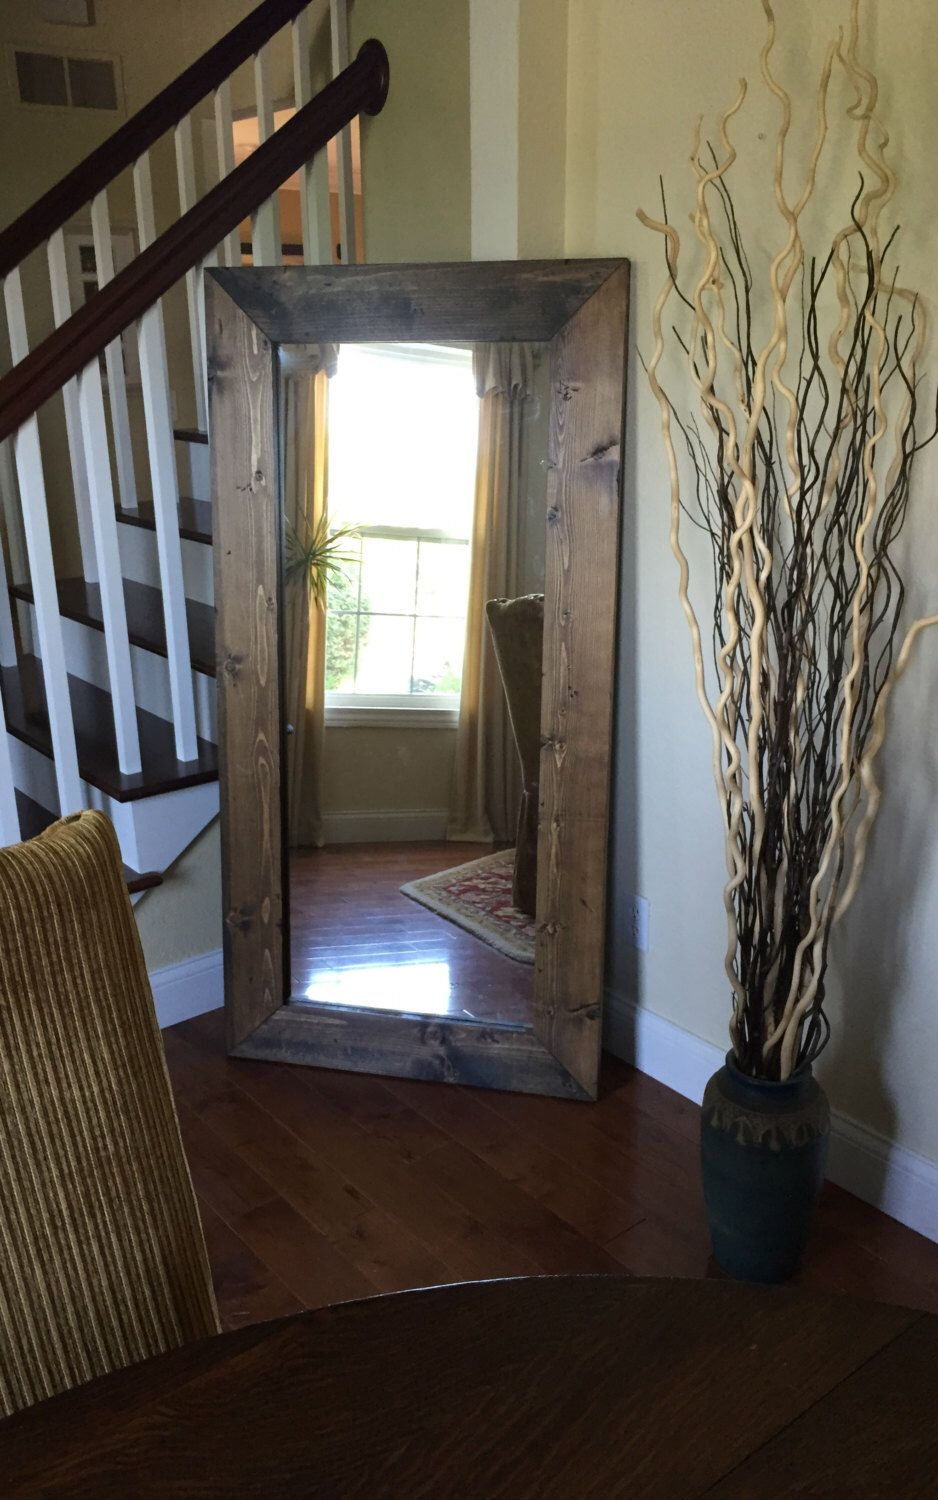 The Lake Cabin Mirror Rustic Floor With Knotty Distressed Wooden Frame